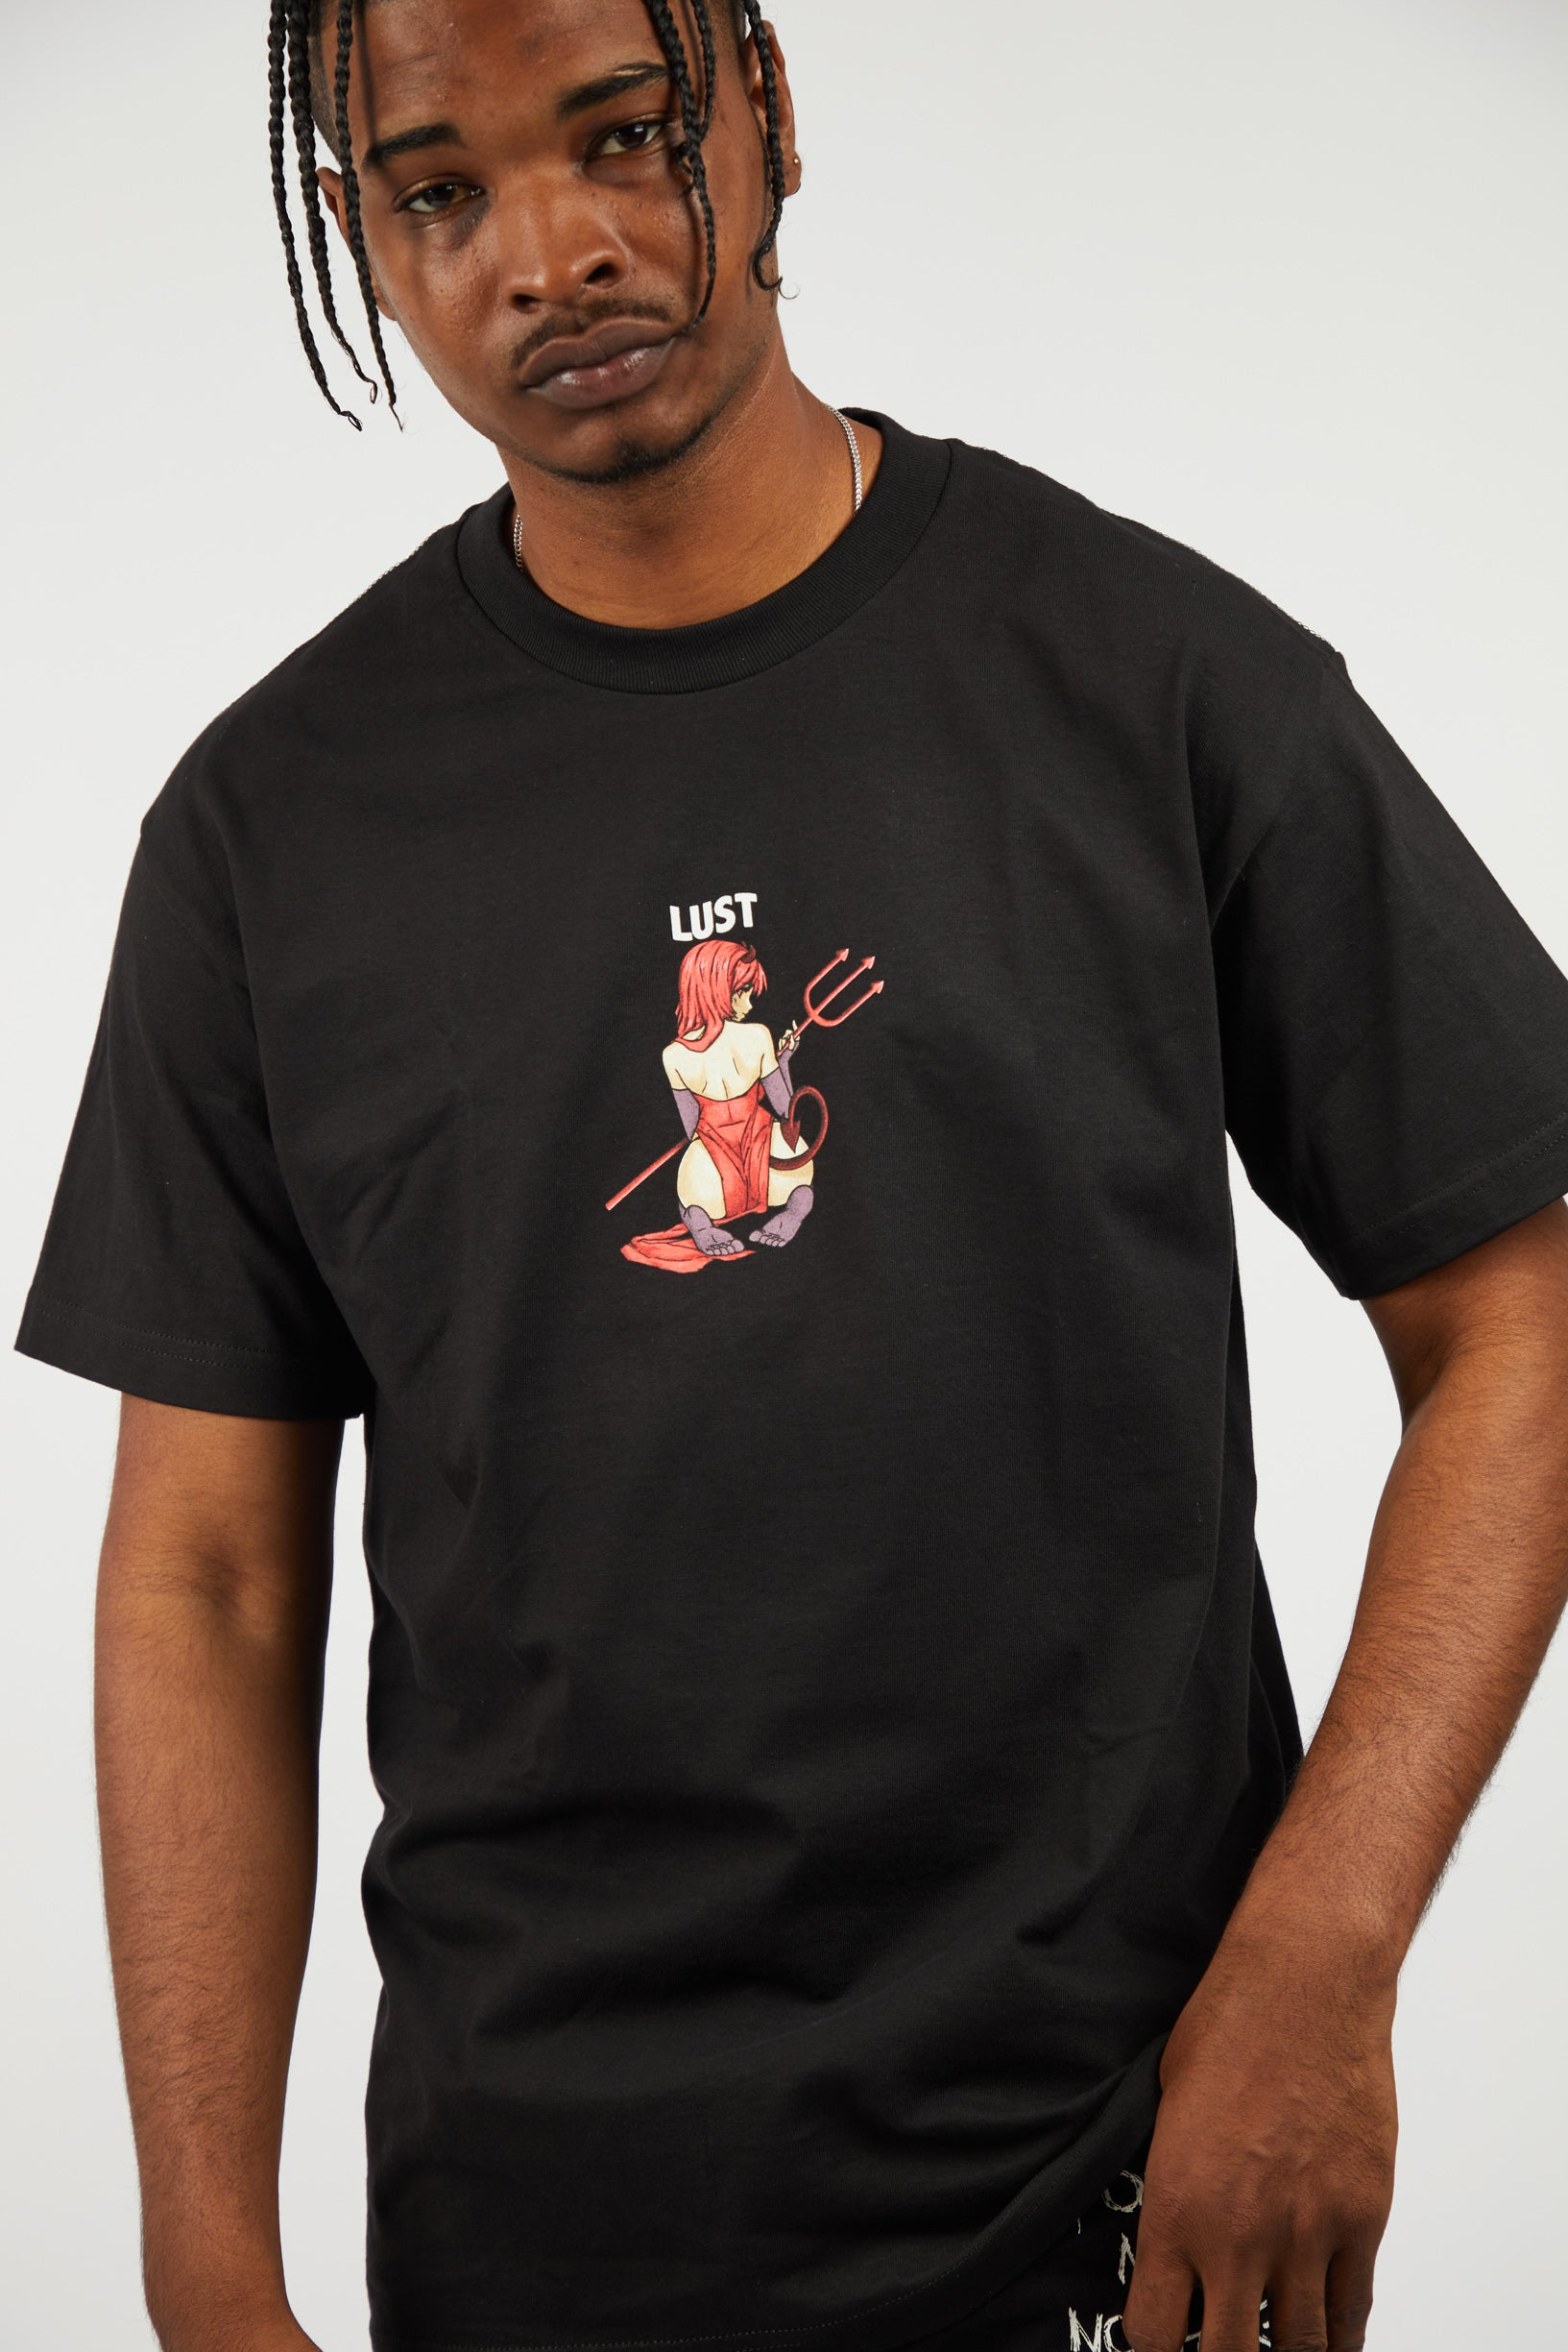 Lust Anime Girl Tee